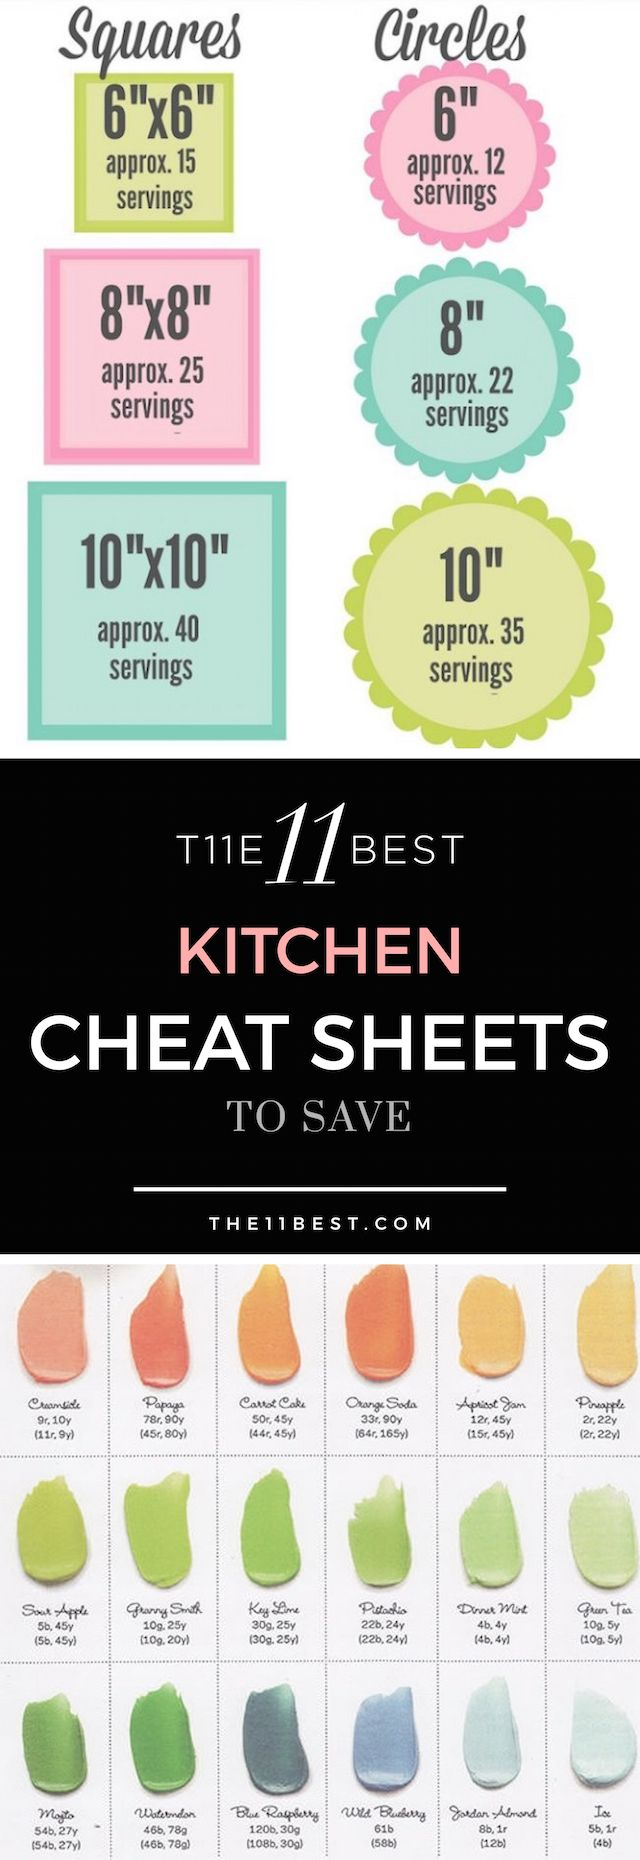 The 11 Best Kitchen Cheat Sheets